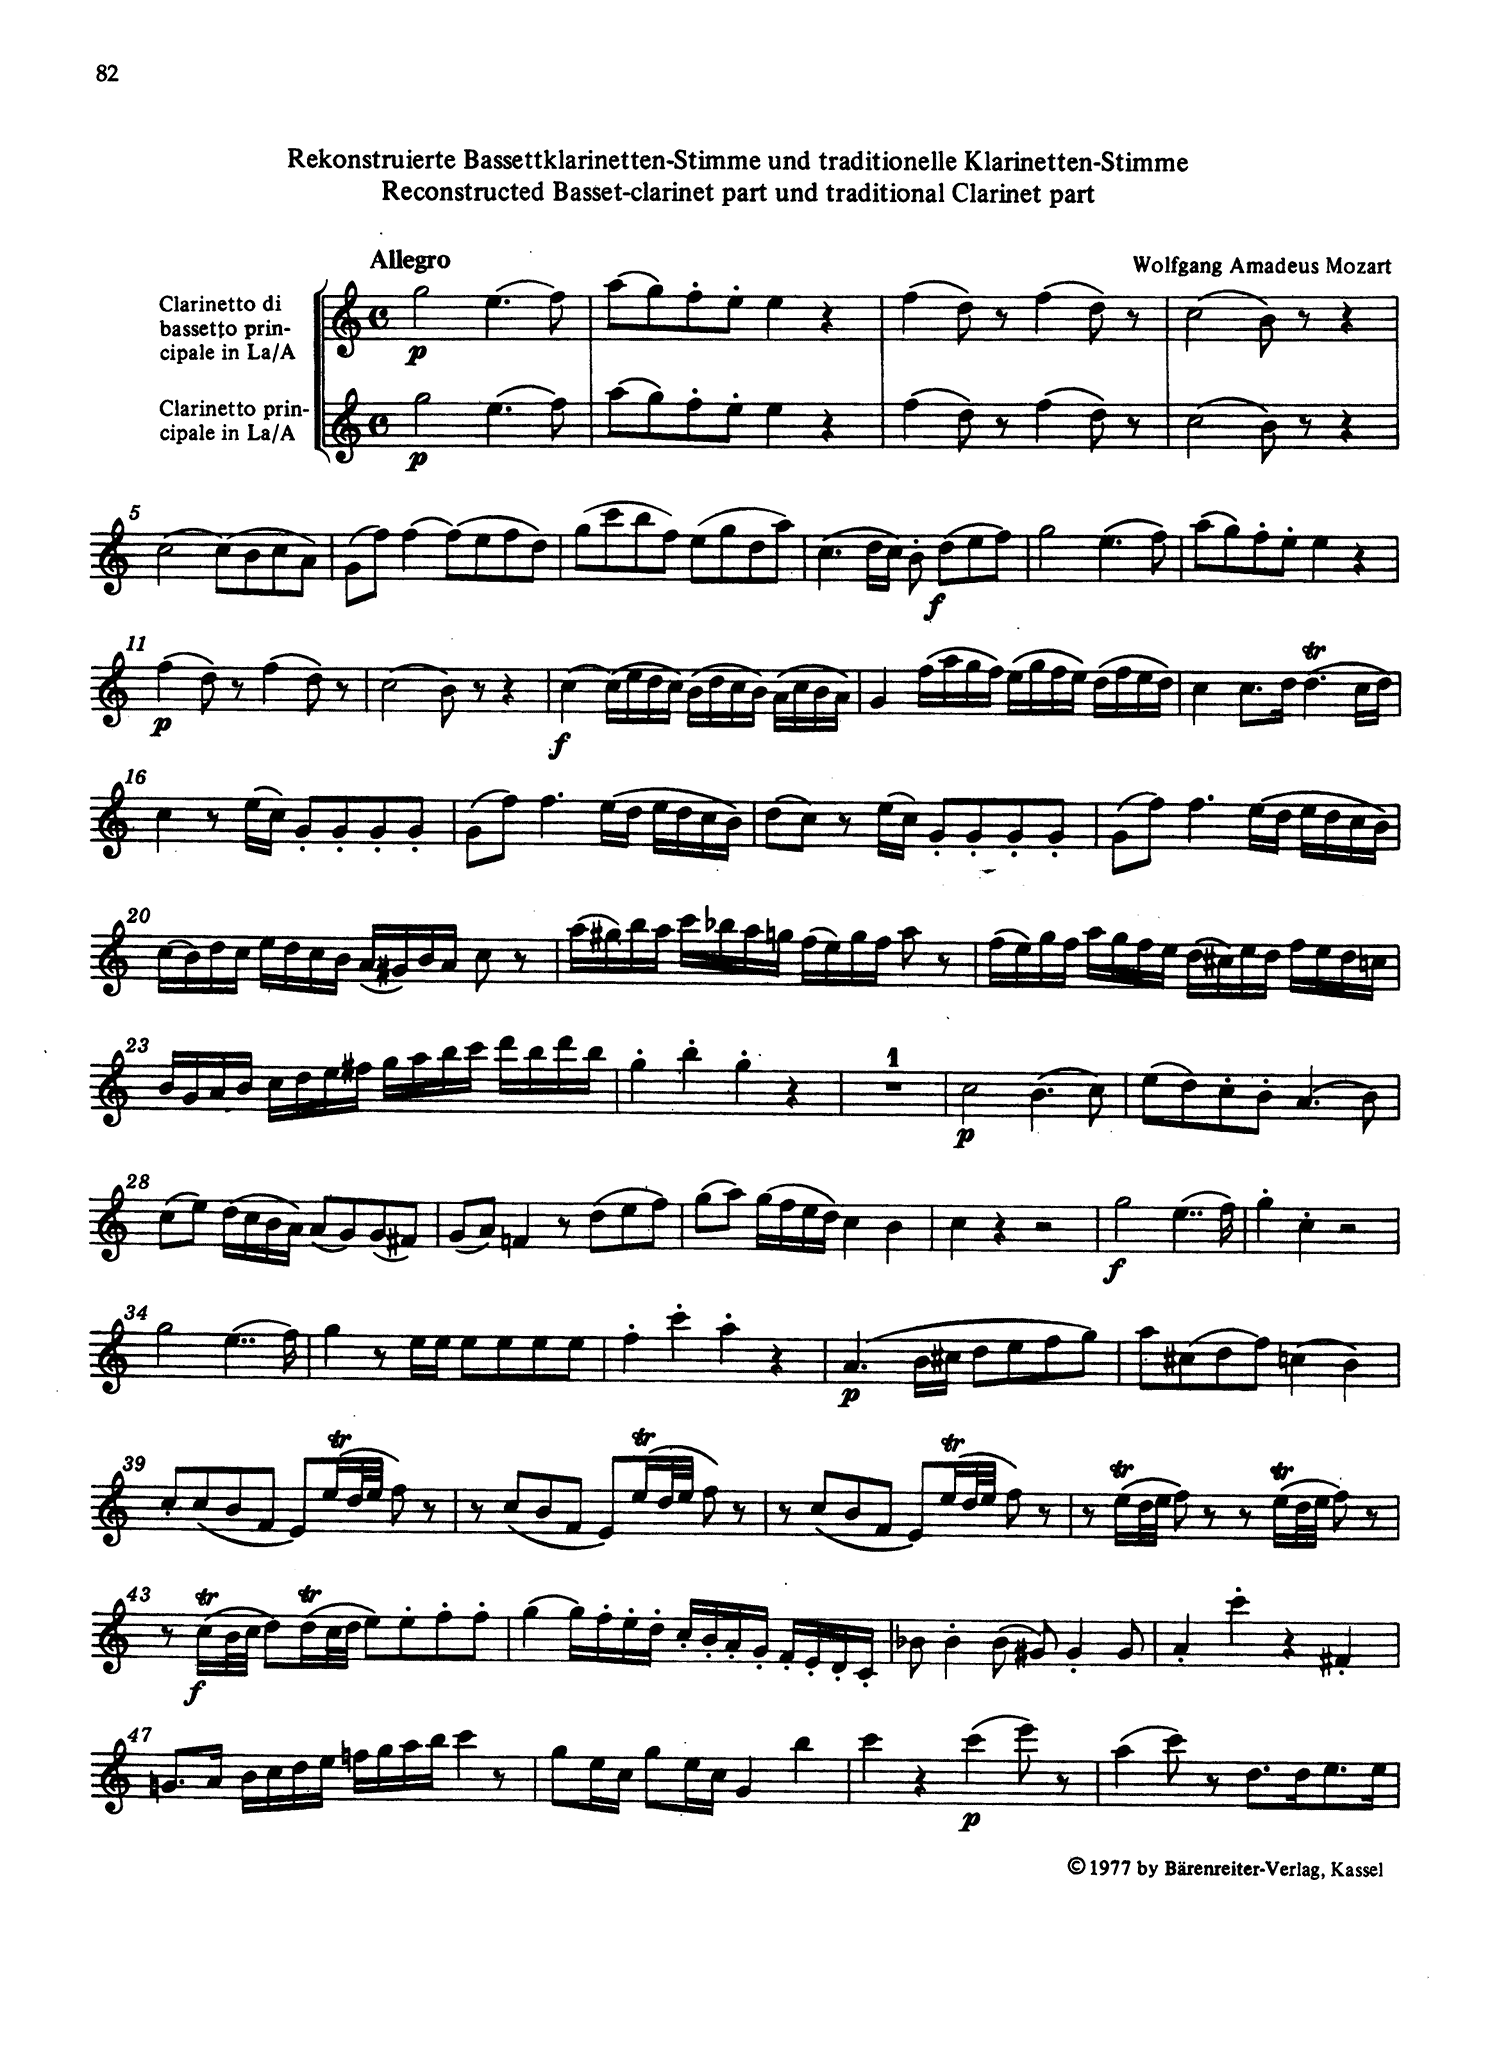 Clarinet Concerto in A Major, K. 622 Clarinet part appendix